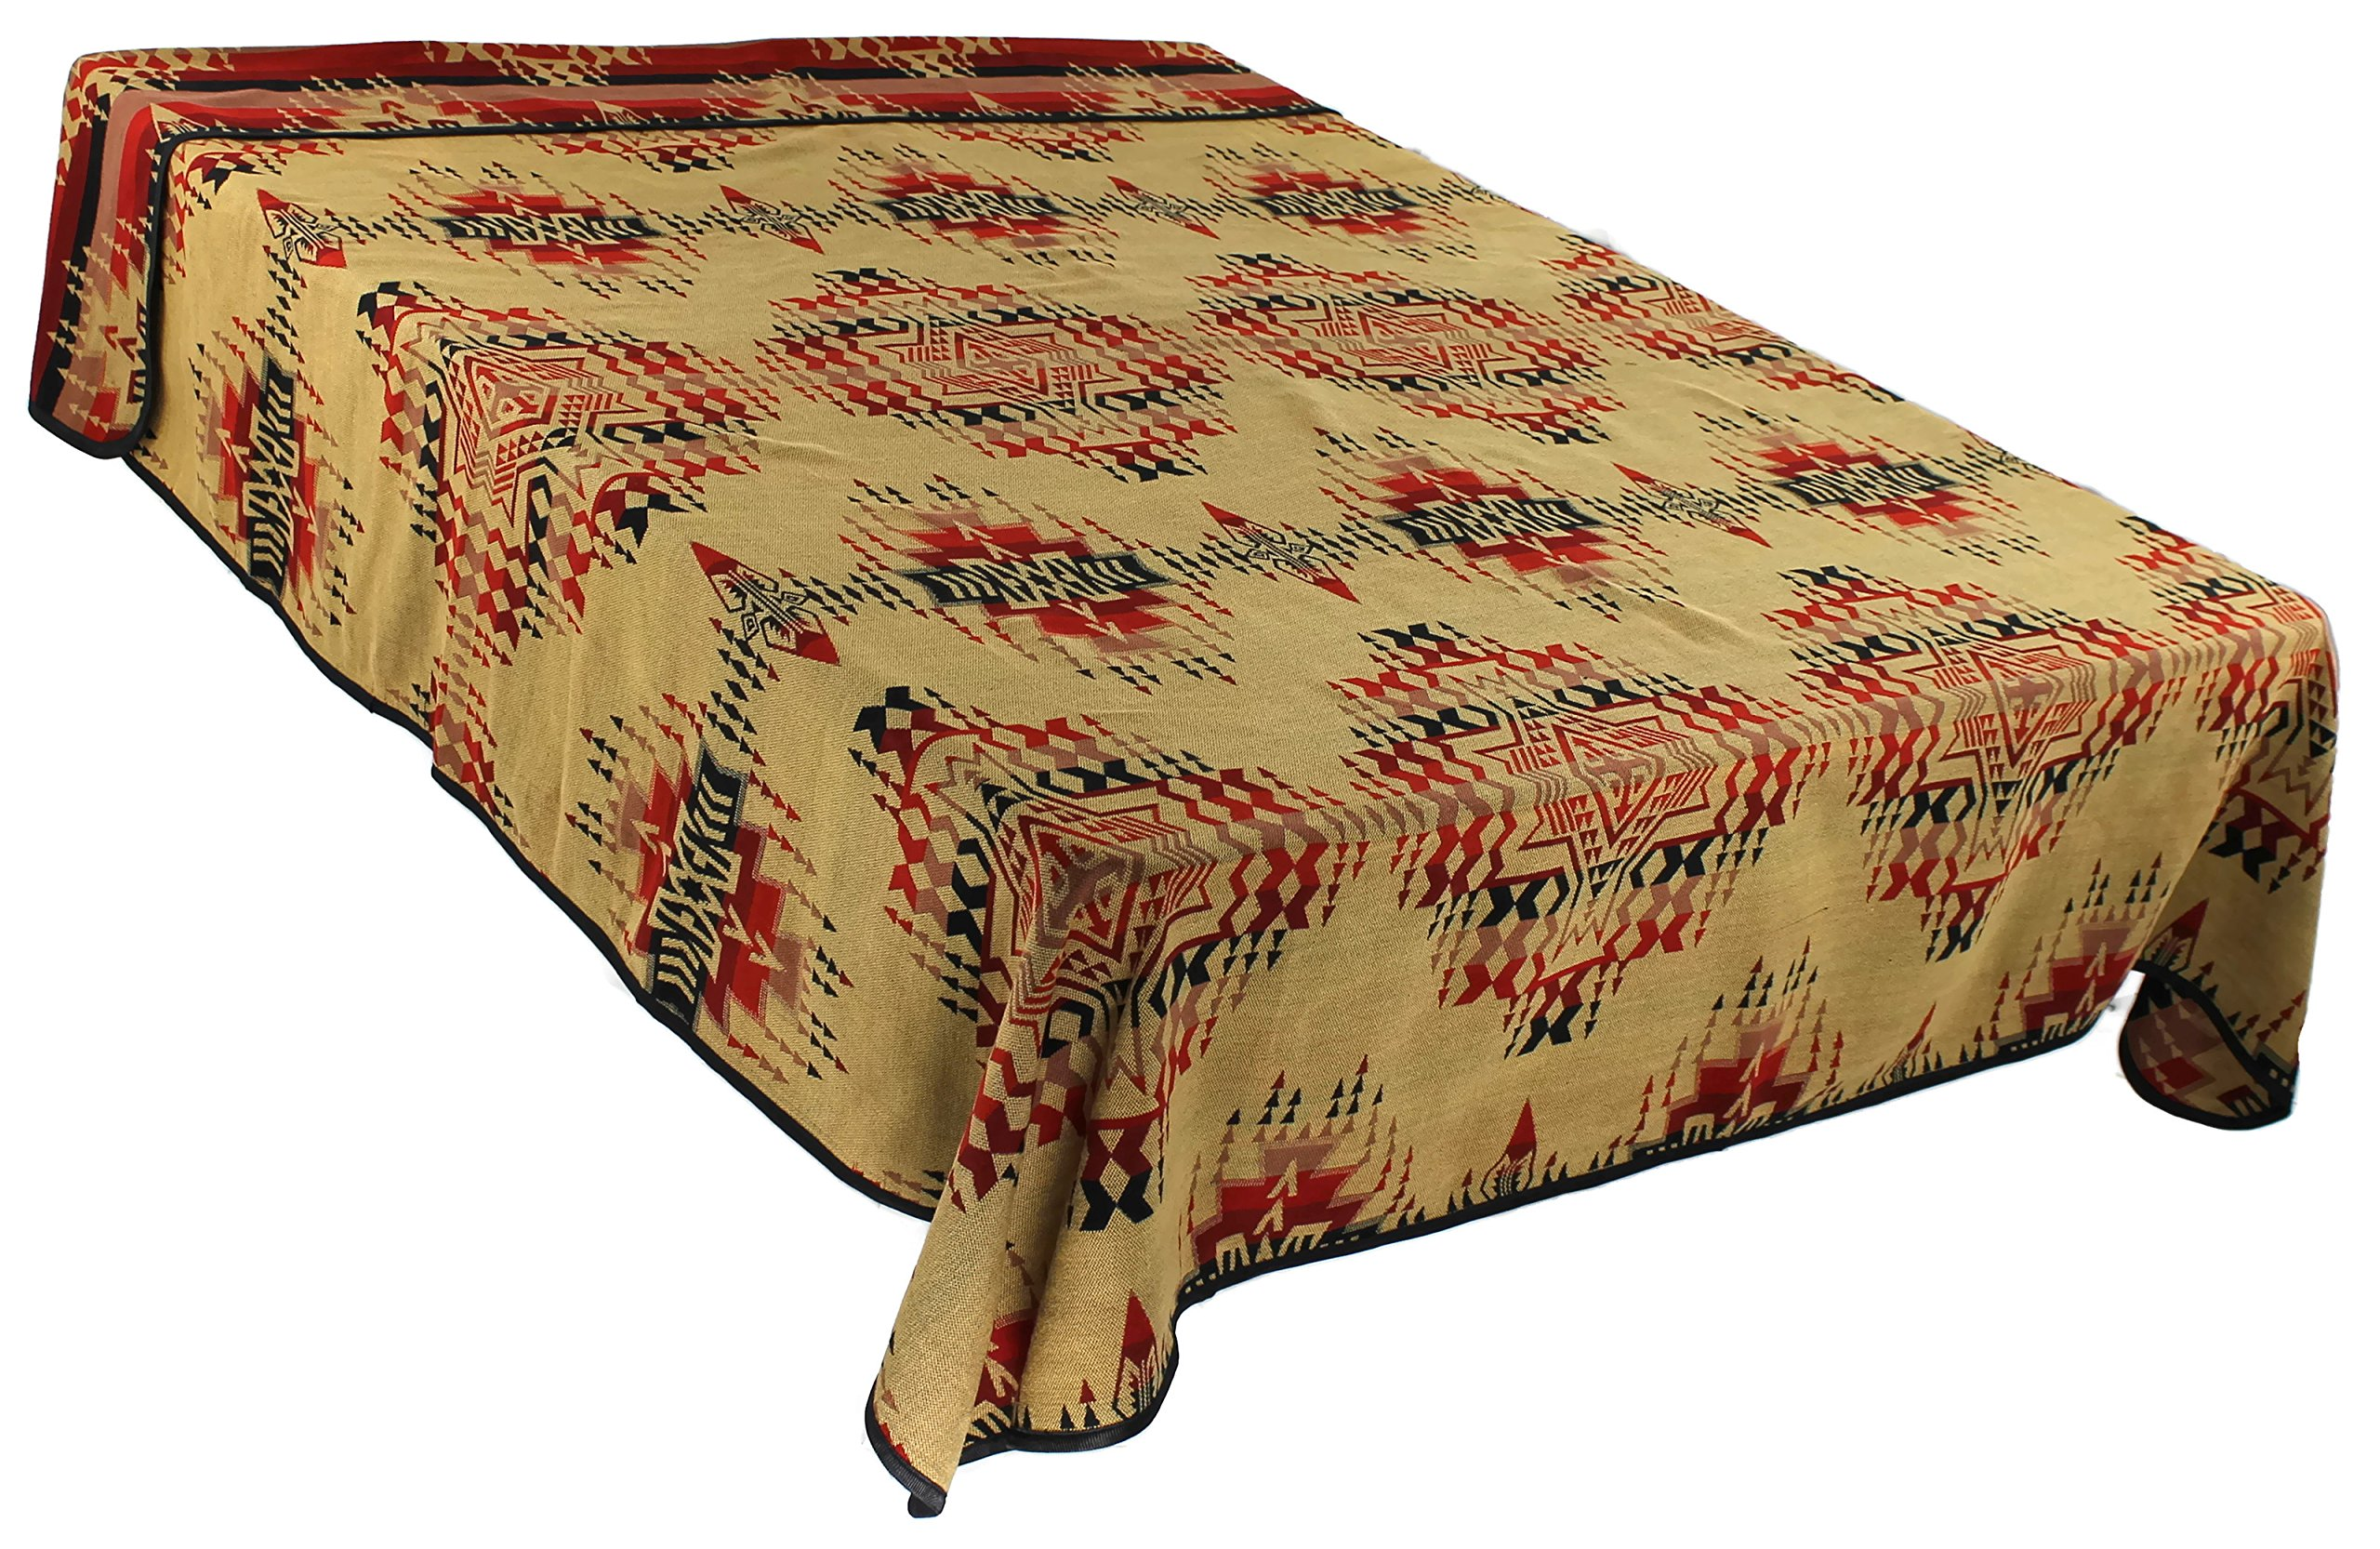 Splendid Exchange Southwestern Bedding Freedom Collection, Mix and Match, Queen/Full Size Reversible Bedspread, High Noon Tan and Red